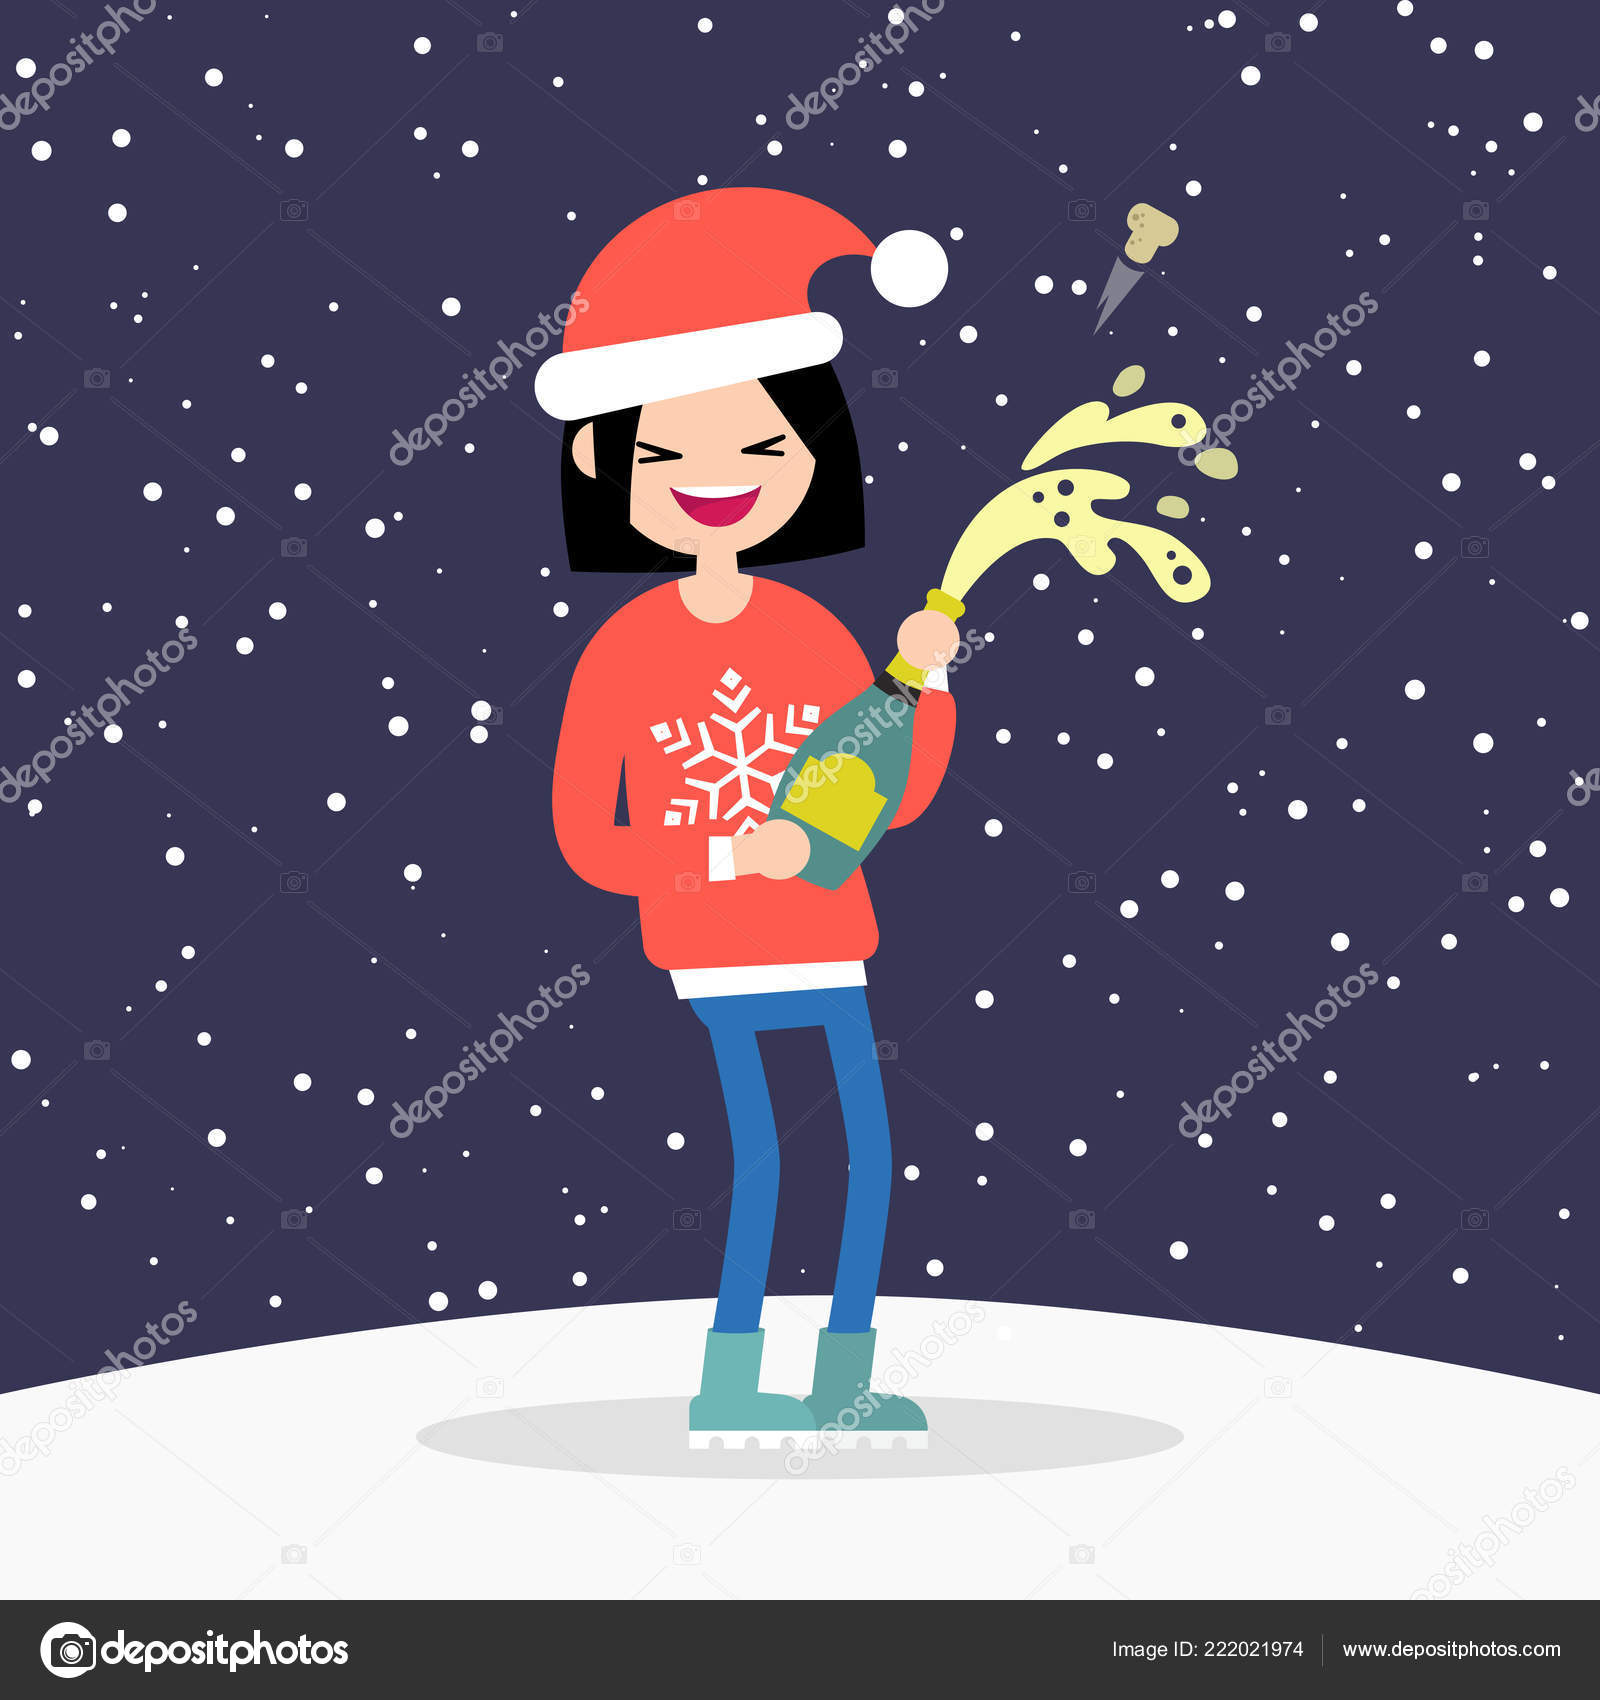 young character opening a bottle of sparkling wine or champagne celebrating the new year winter holidays flat editable vector illustration clip art